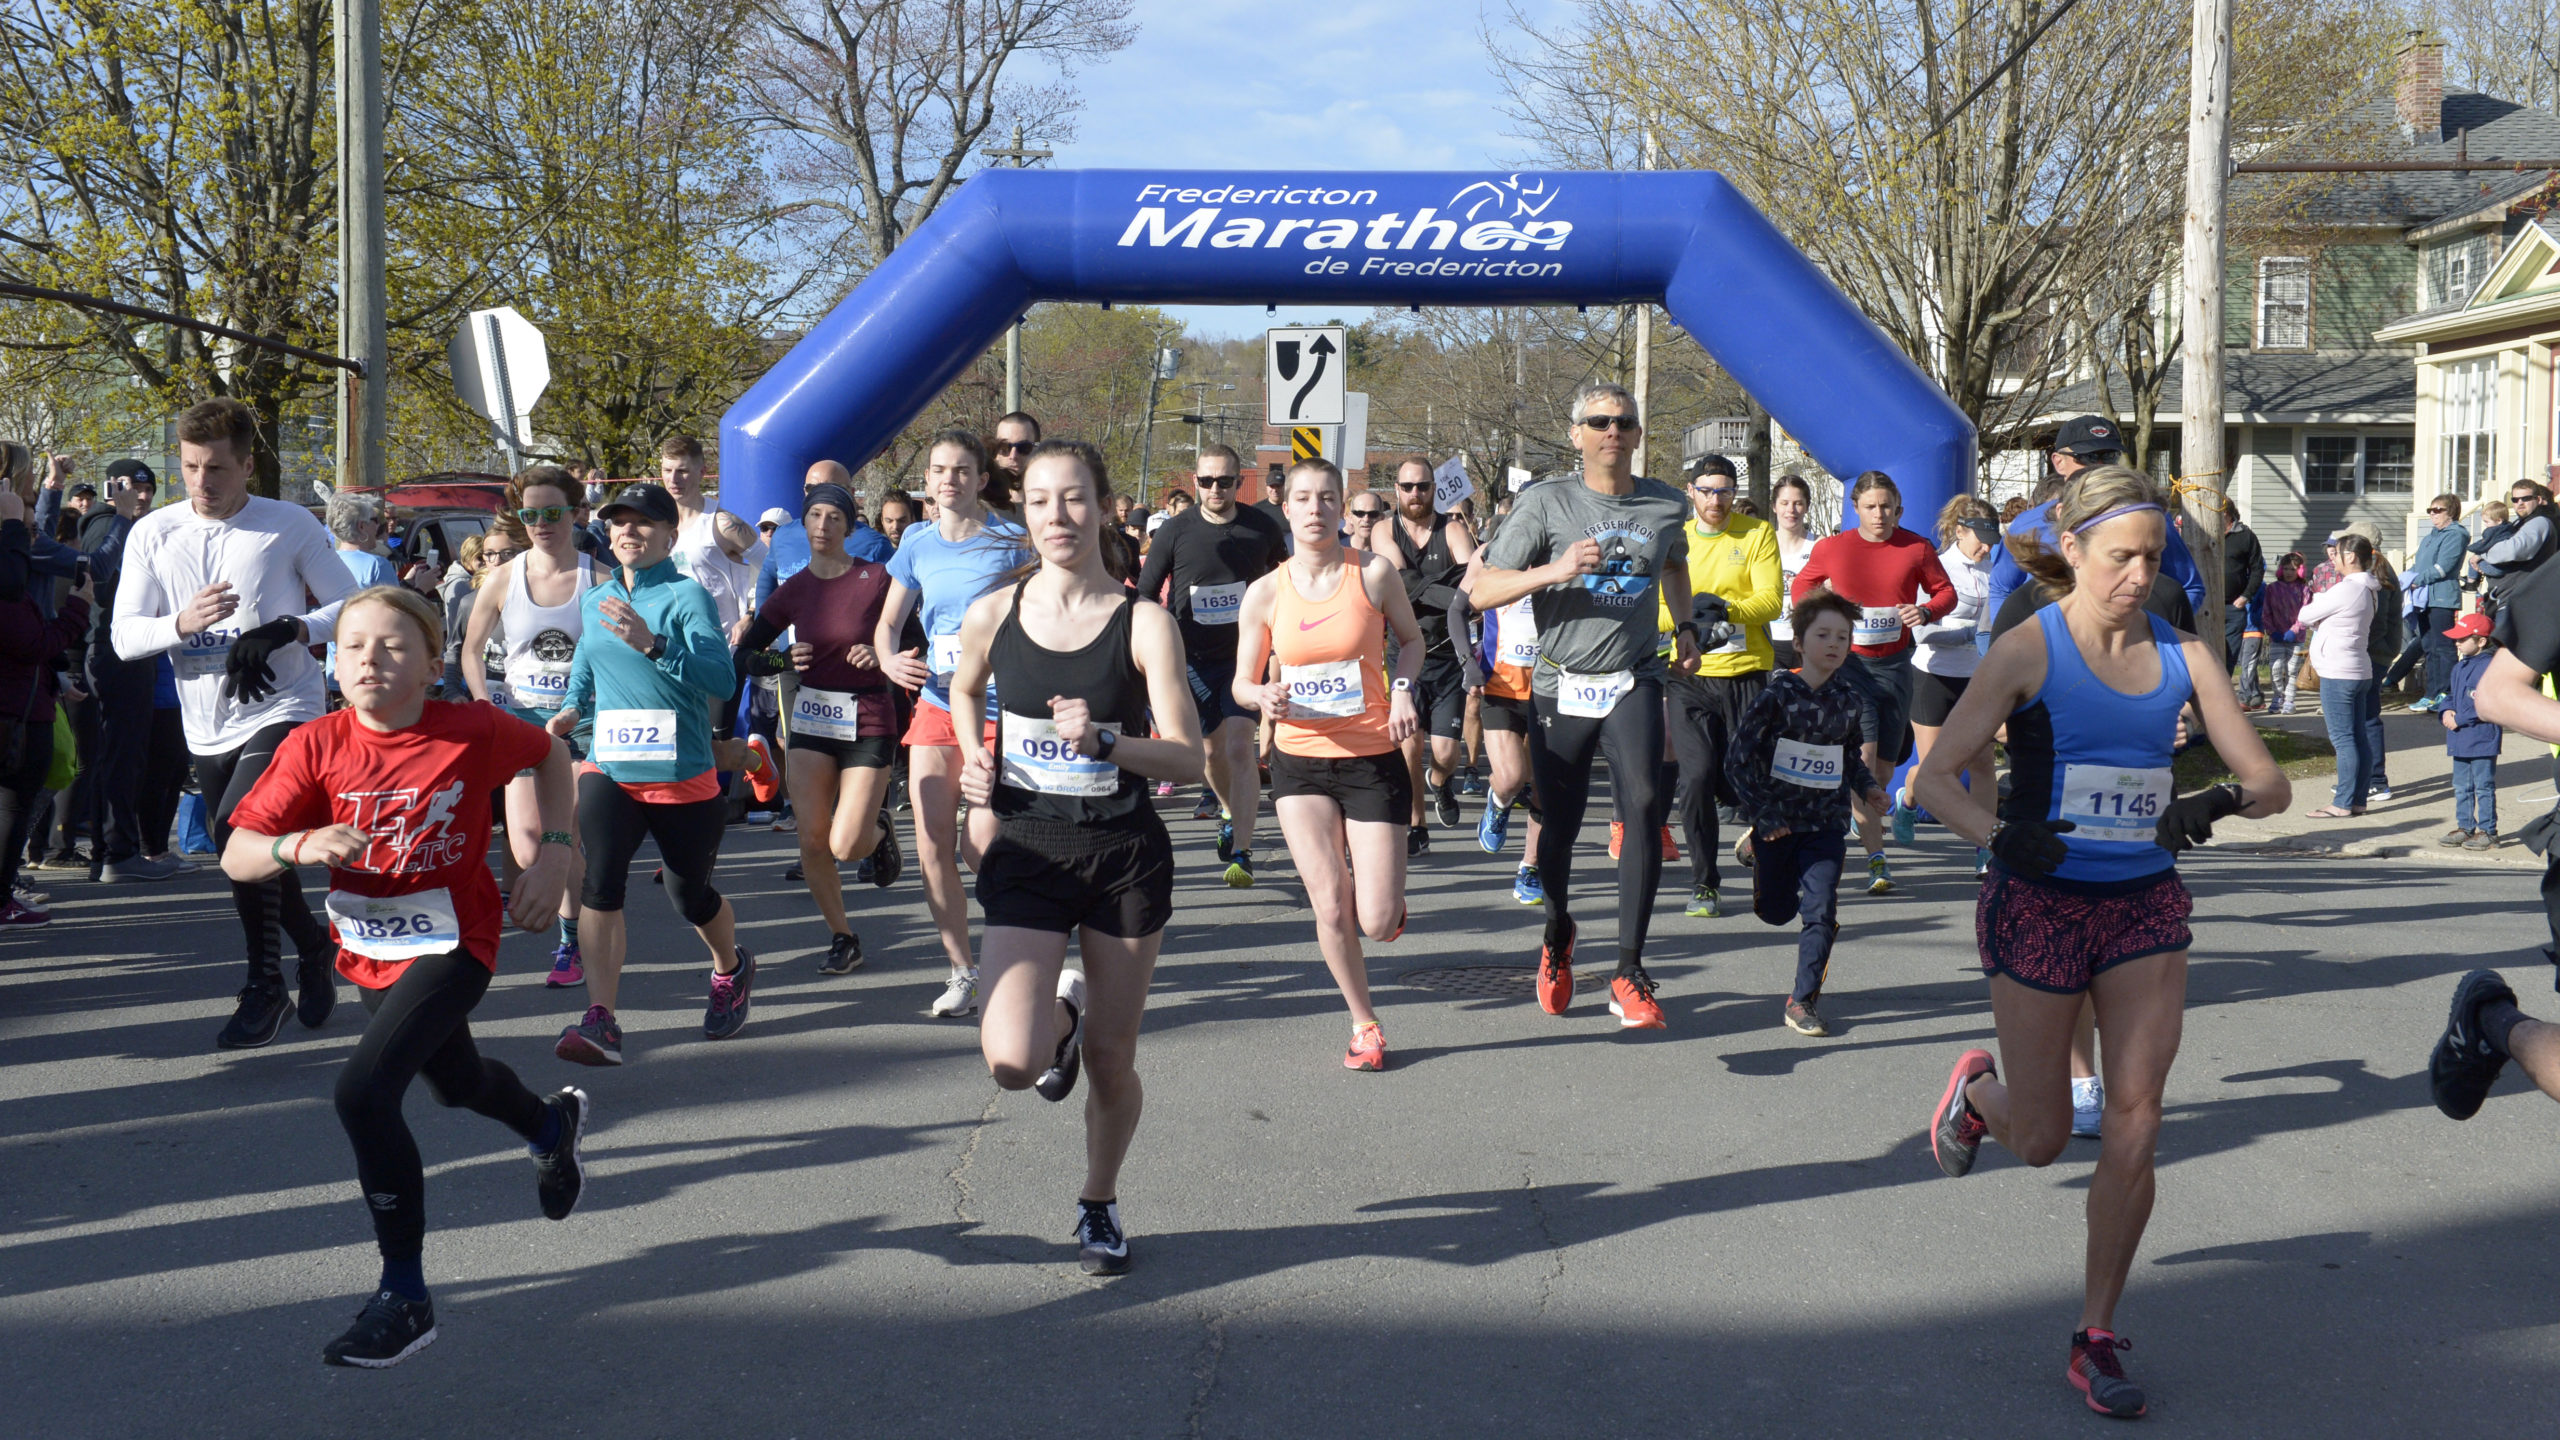 Organizers of the Fredericton Marathon are hoping it will be in-person this year, like it was in 2019.